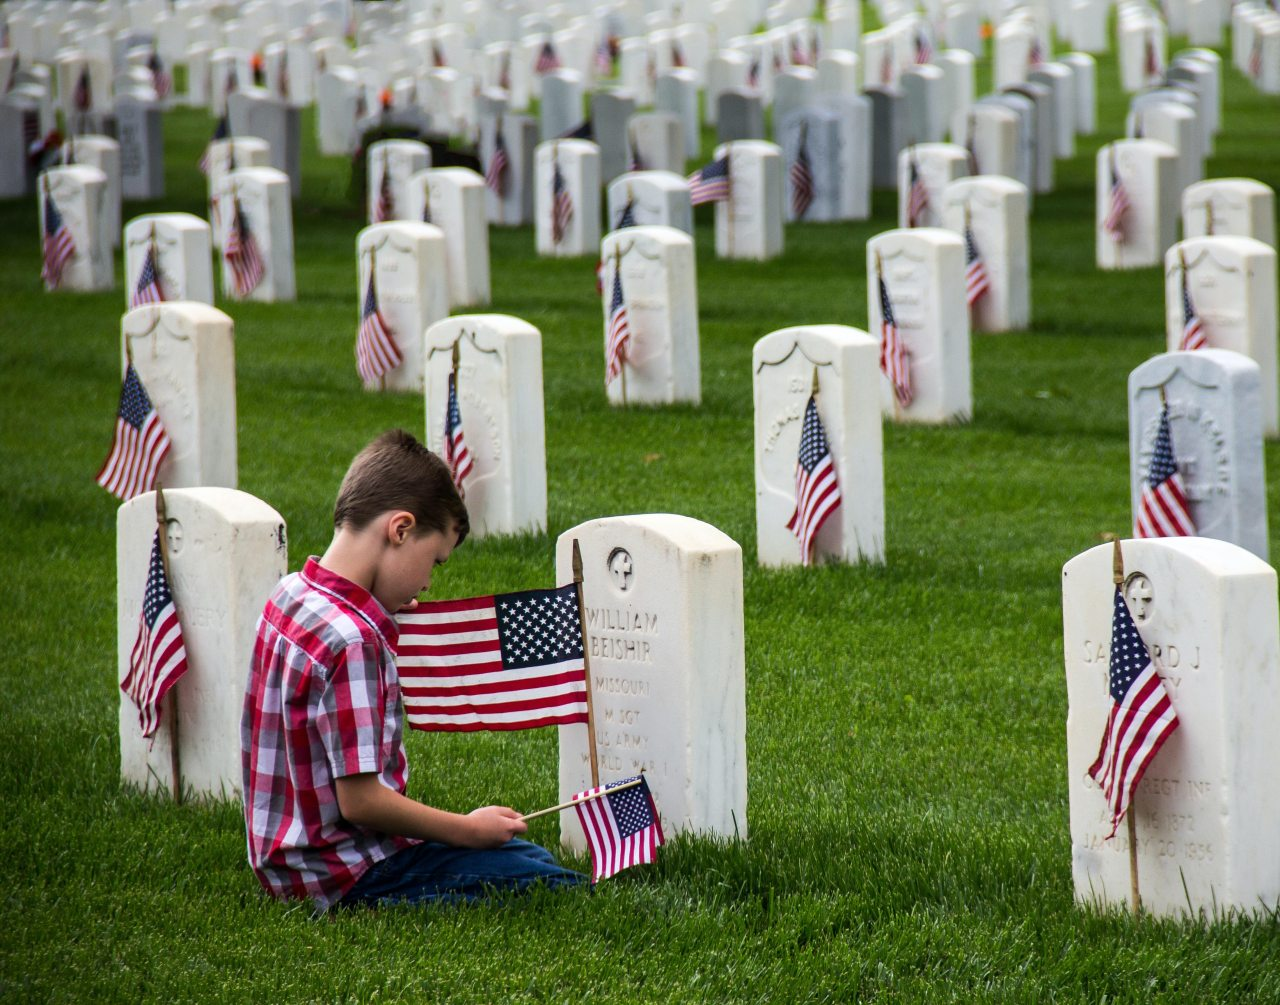 Boy kneels with American flag in front of rows of tombstones